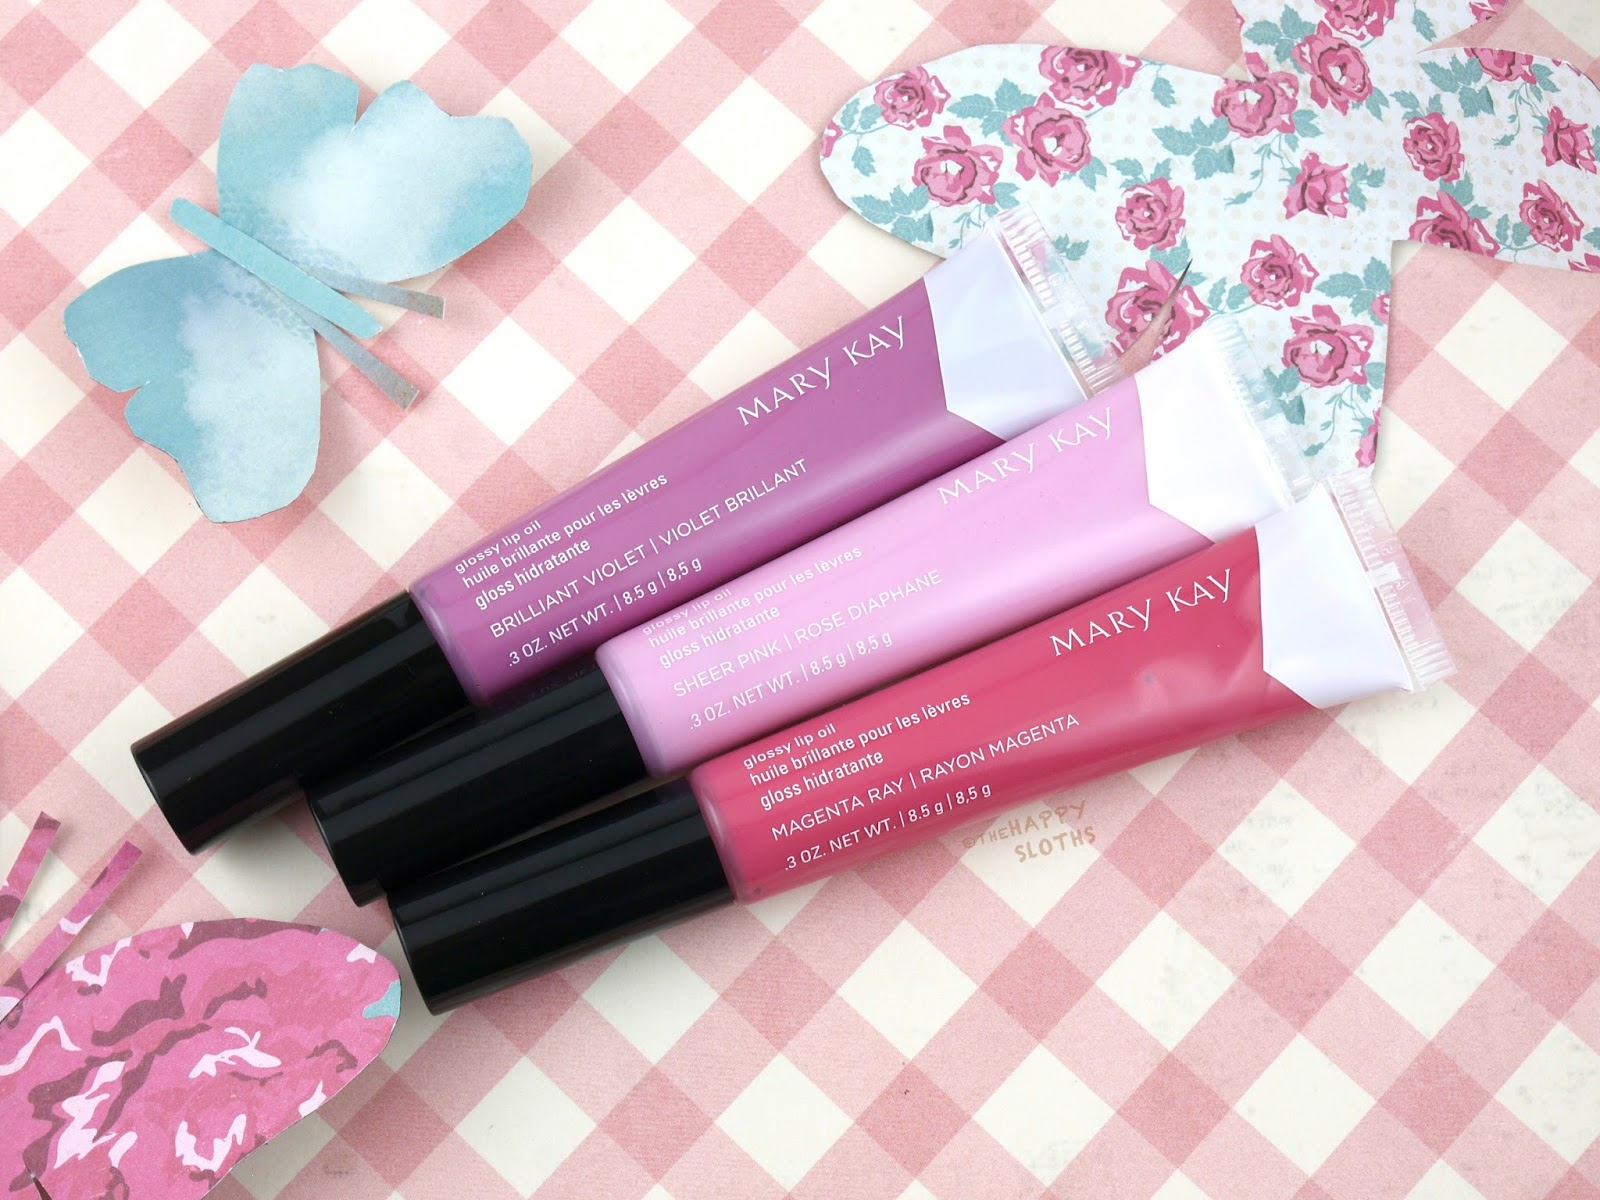 Mary Kay Spring 2017 Light, Reinvented Collection Glossy Lip Oil: Review and Swatches